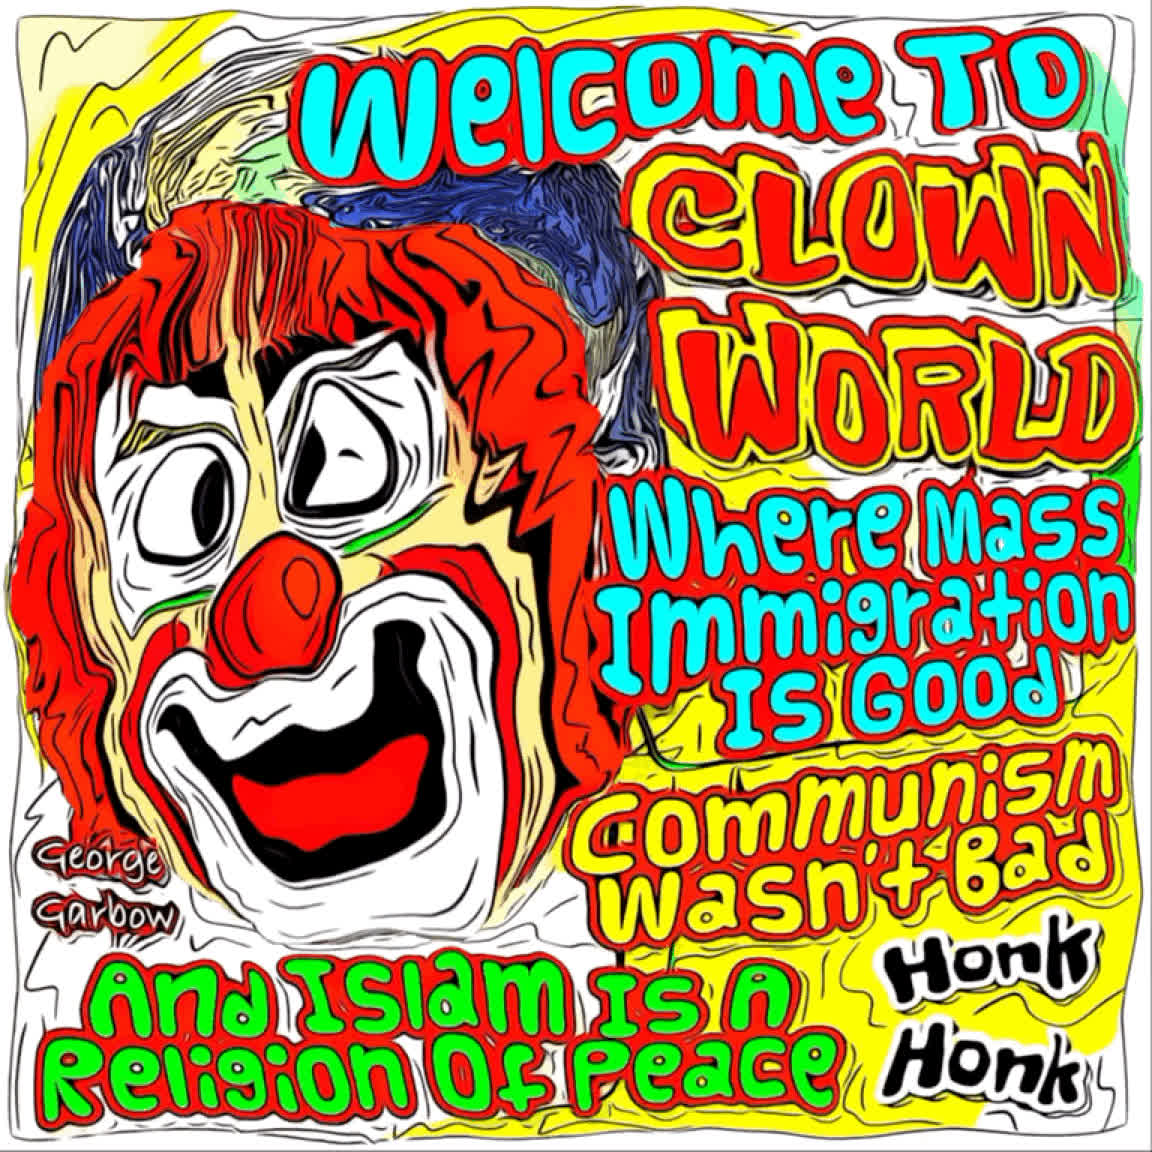 Clown World Gif By Drteeth Gfycat In this video i explain the meaning of carnival, or the circus, inversion festivals and of. clown world gif by drteeth gfycat